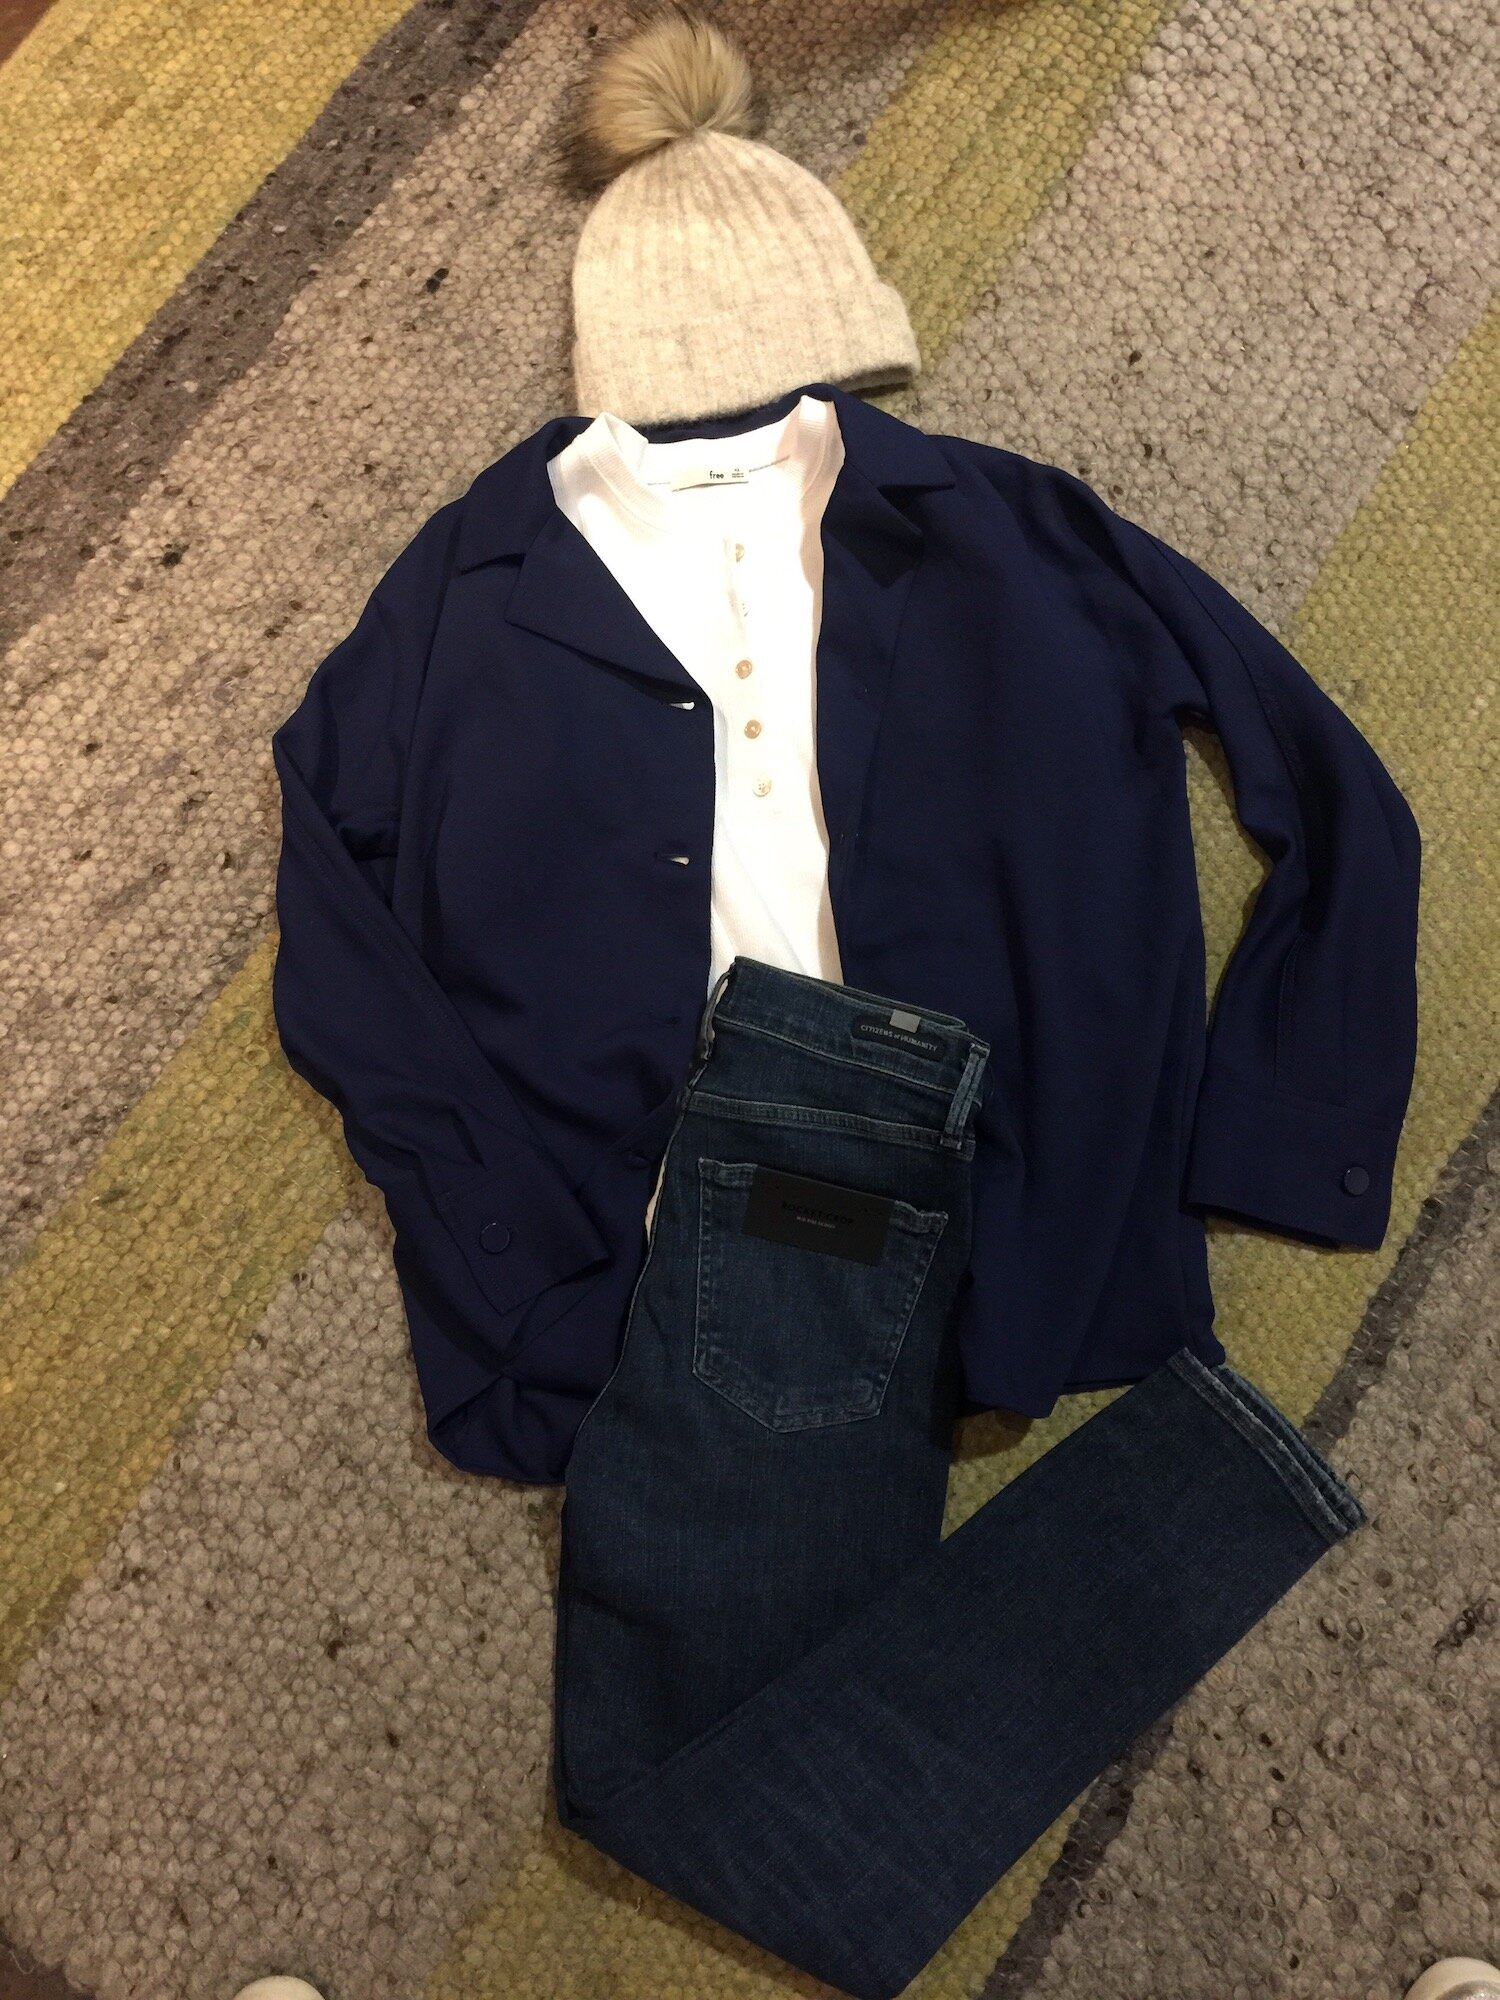 Jeans work for the office; just make sure they're your best pair in a slim fit in a medium or dark wash.  This outfit would be perfect for casual Friday paired with a leather lace-up brogue.  We've styled these dark Citizen jeans with a white shirt and loose navy shirt jacket.  Outfit from Aritzia.